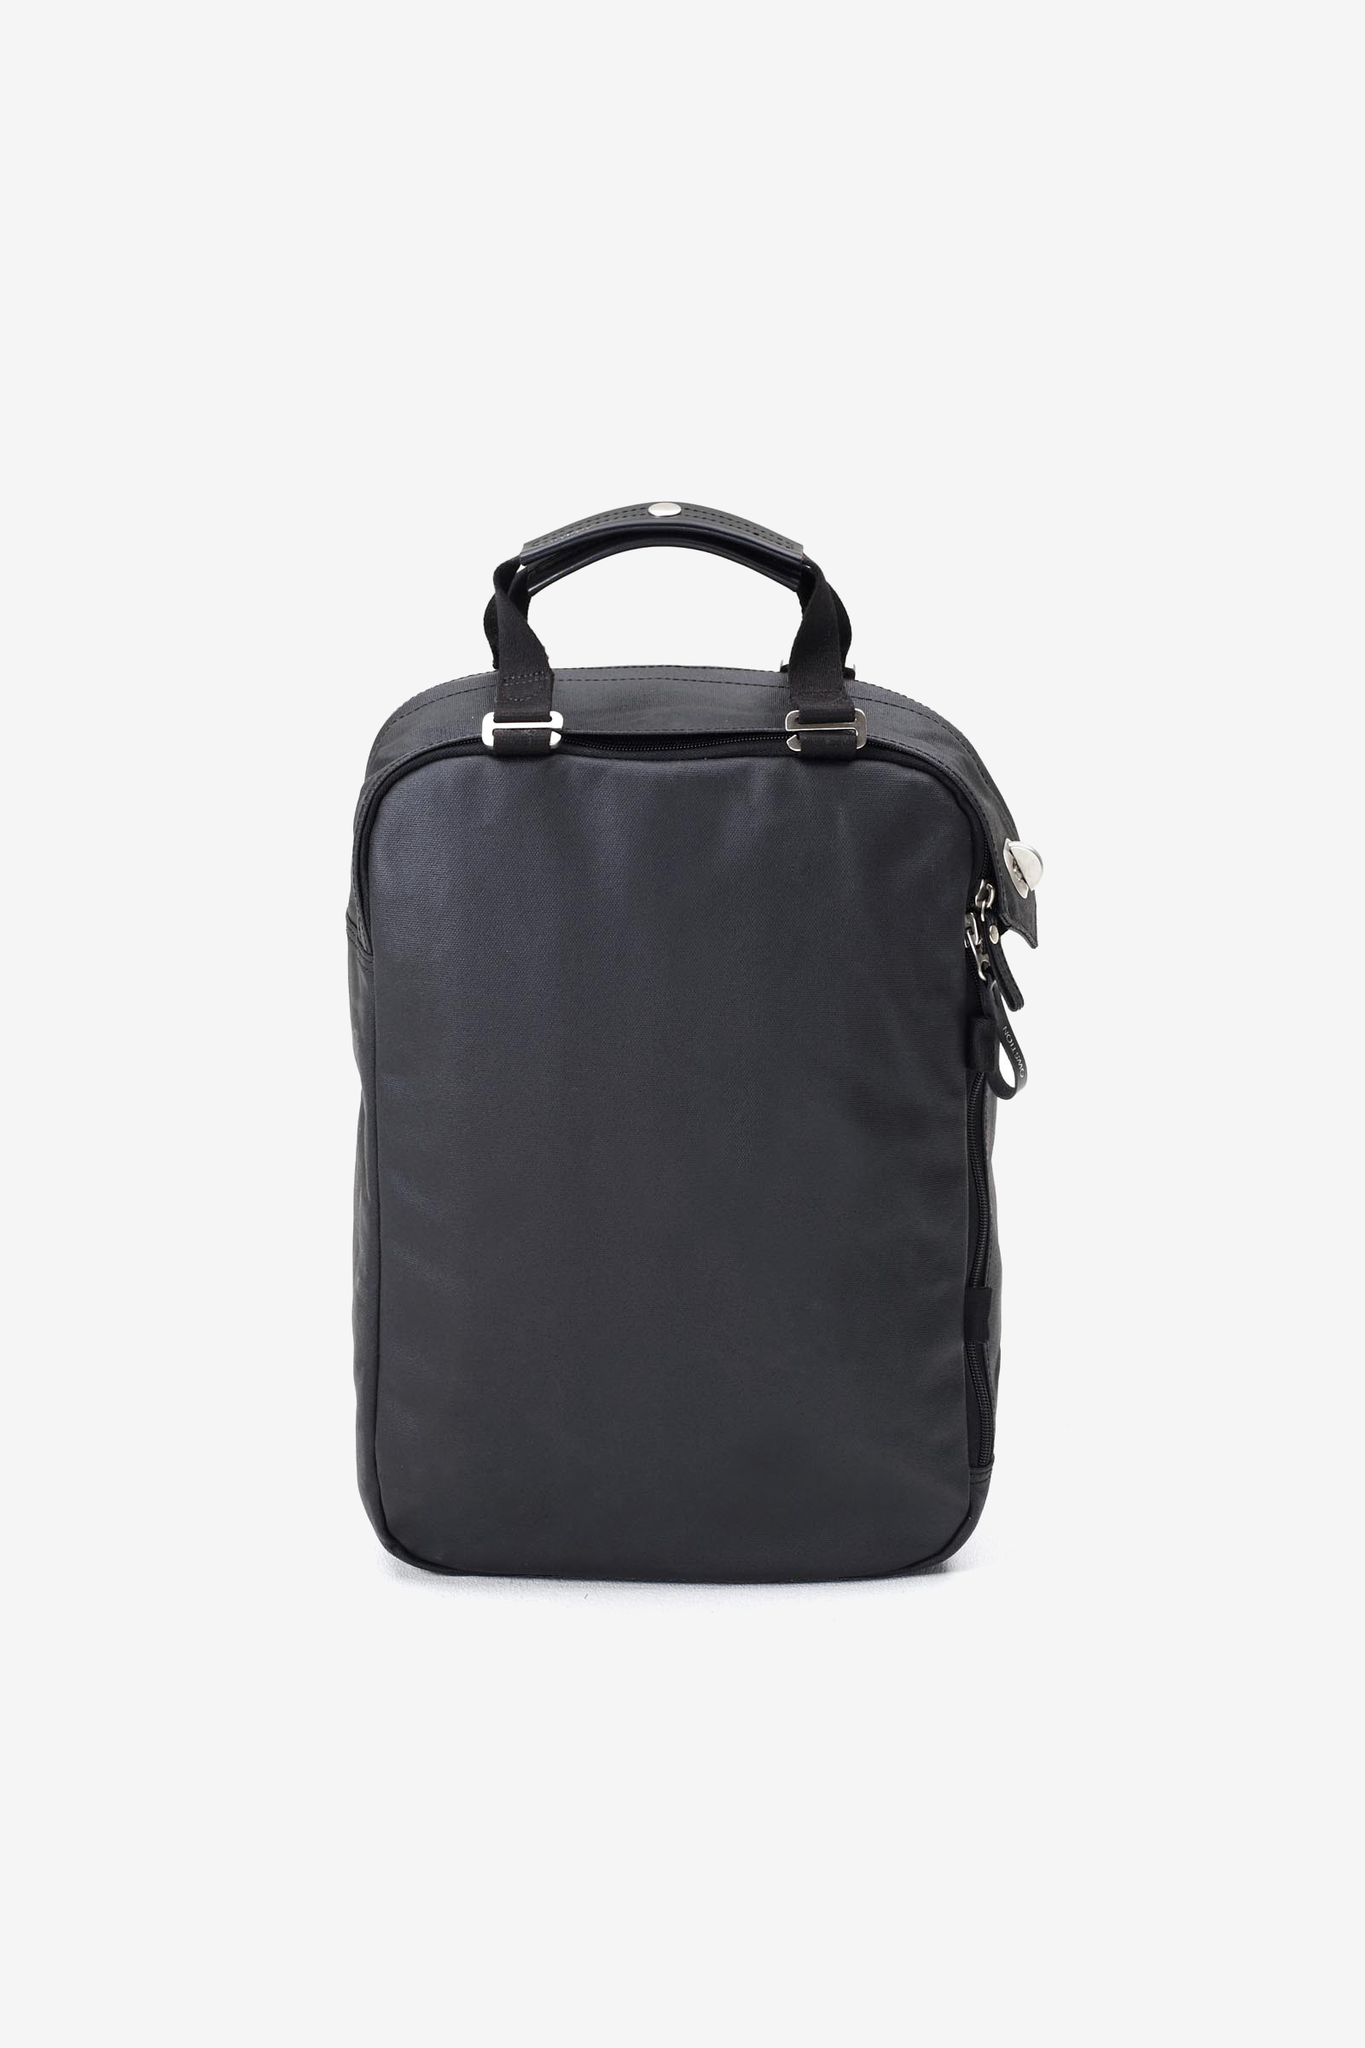 Daypack Organic Jet Black, Bags, QWSTION - Six and Sons